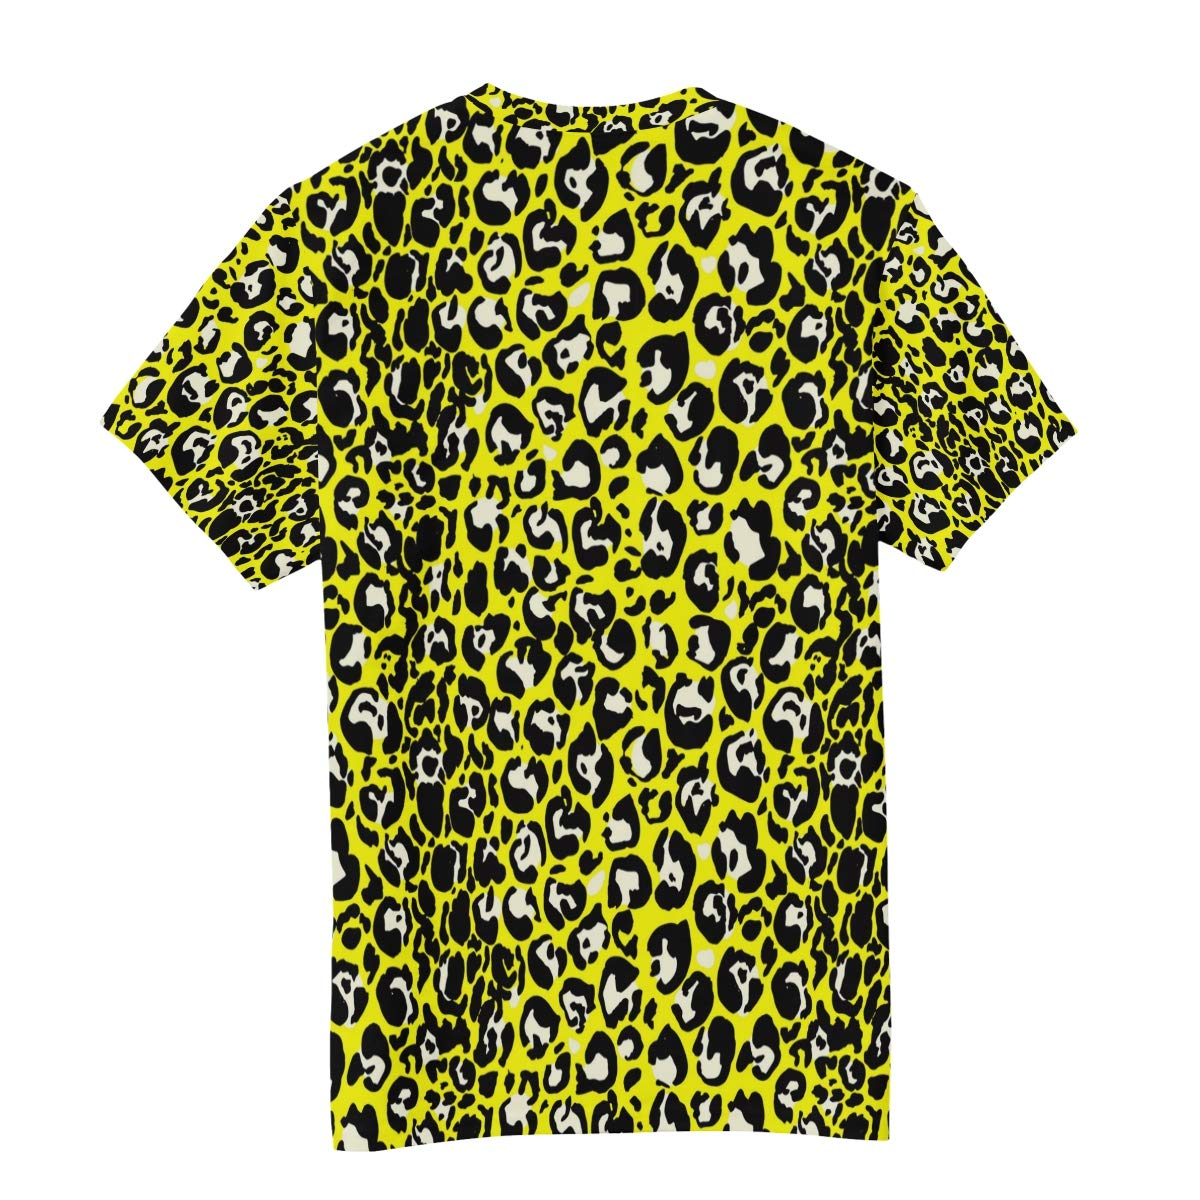 Horatiood Huberyyd Bright Yellow Leopard Print Mens T Shirts Graphic Funny Body Print Short T-Shirt Unisex Pullover Blouse